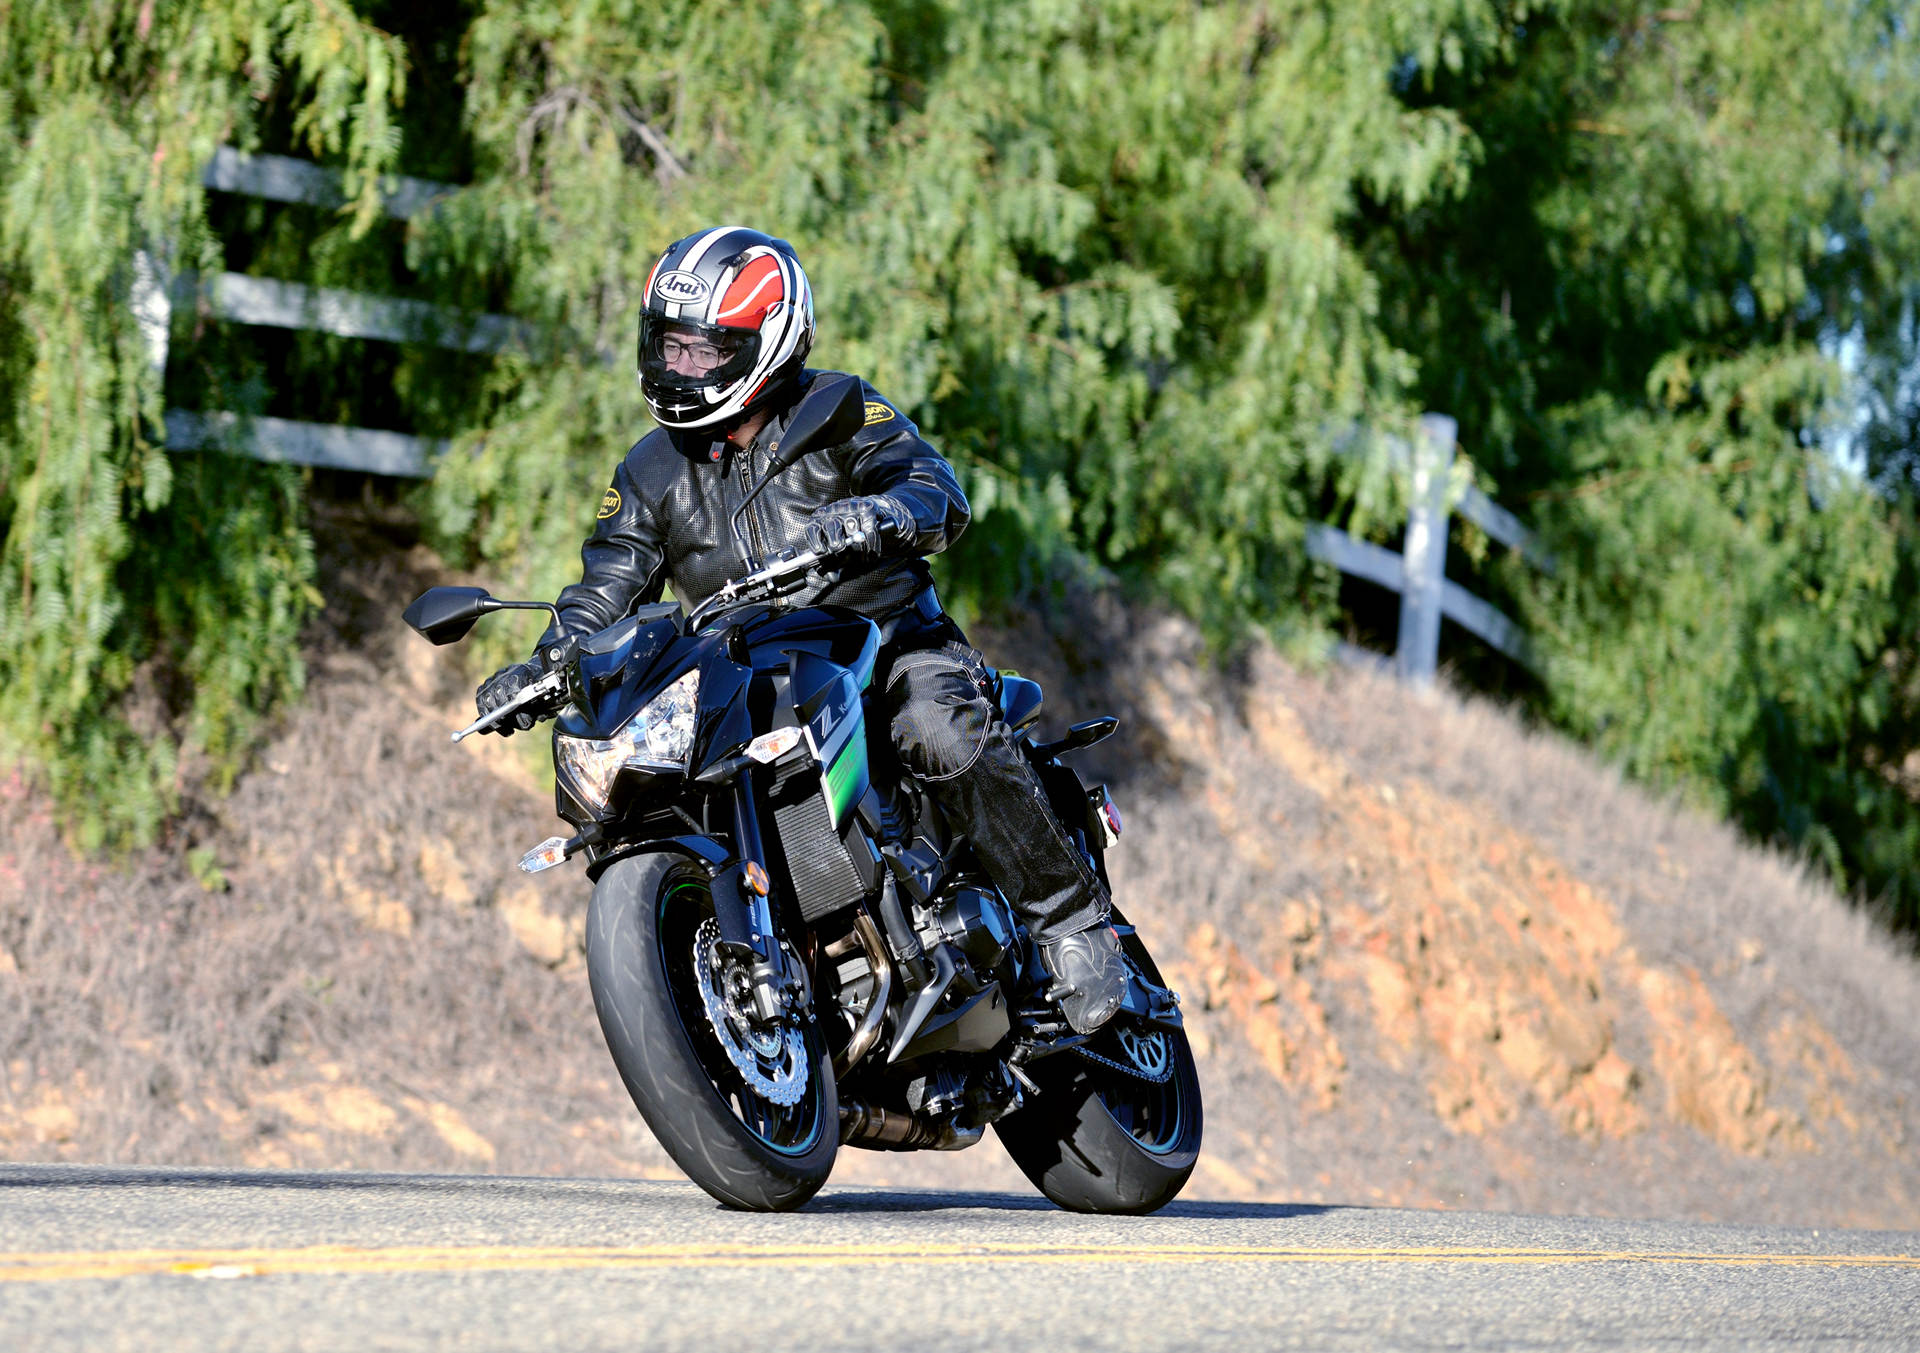 2016 Kawasaki Z800 ABS MD Ride Review